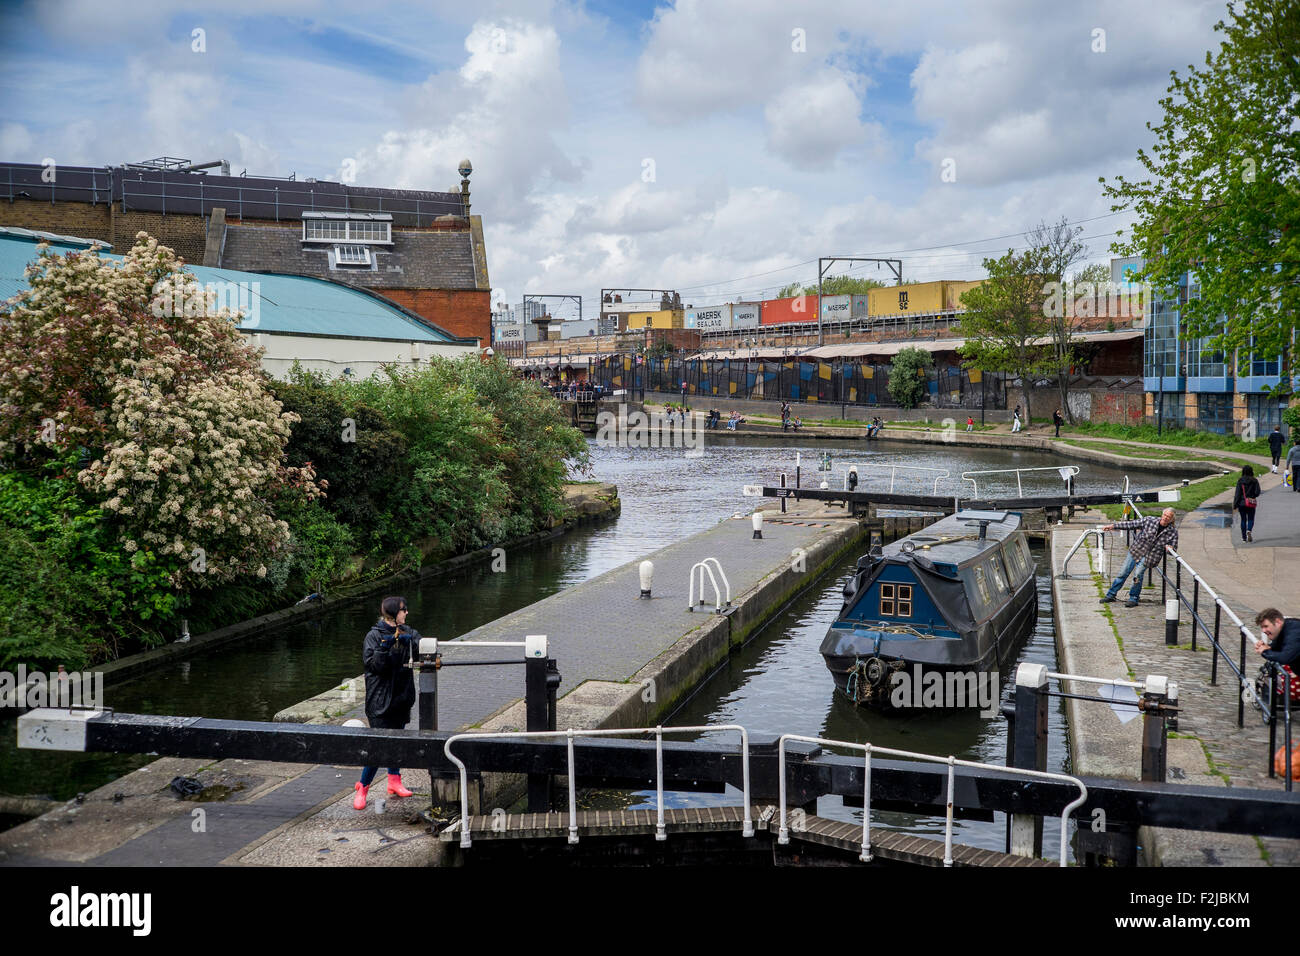 Lock gates and canal boat on Regent's Canal near Camden Lock and Market in London England near MTV Viacom studios - Stock Image